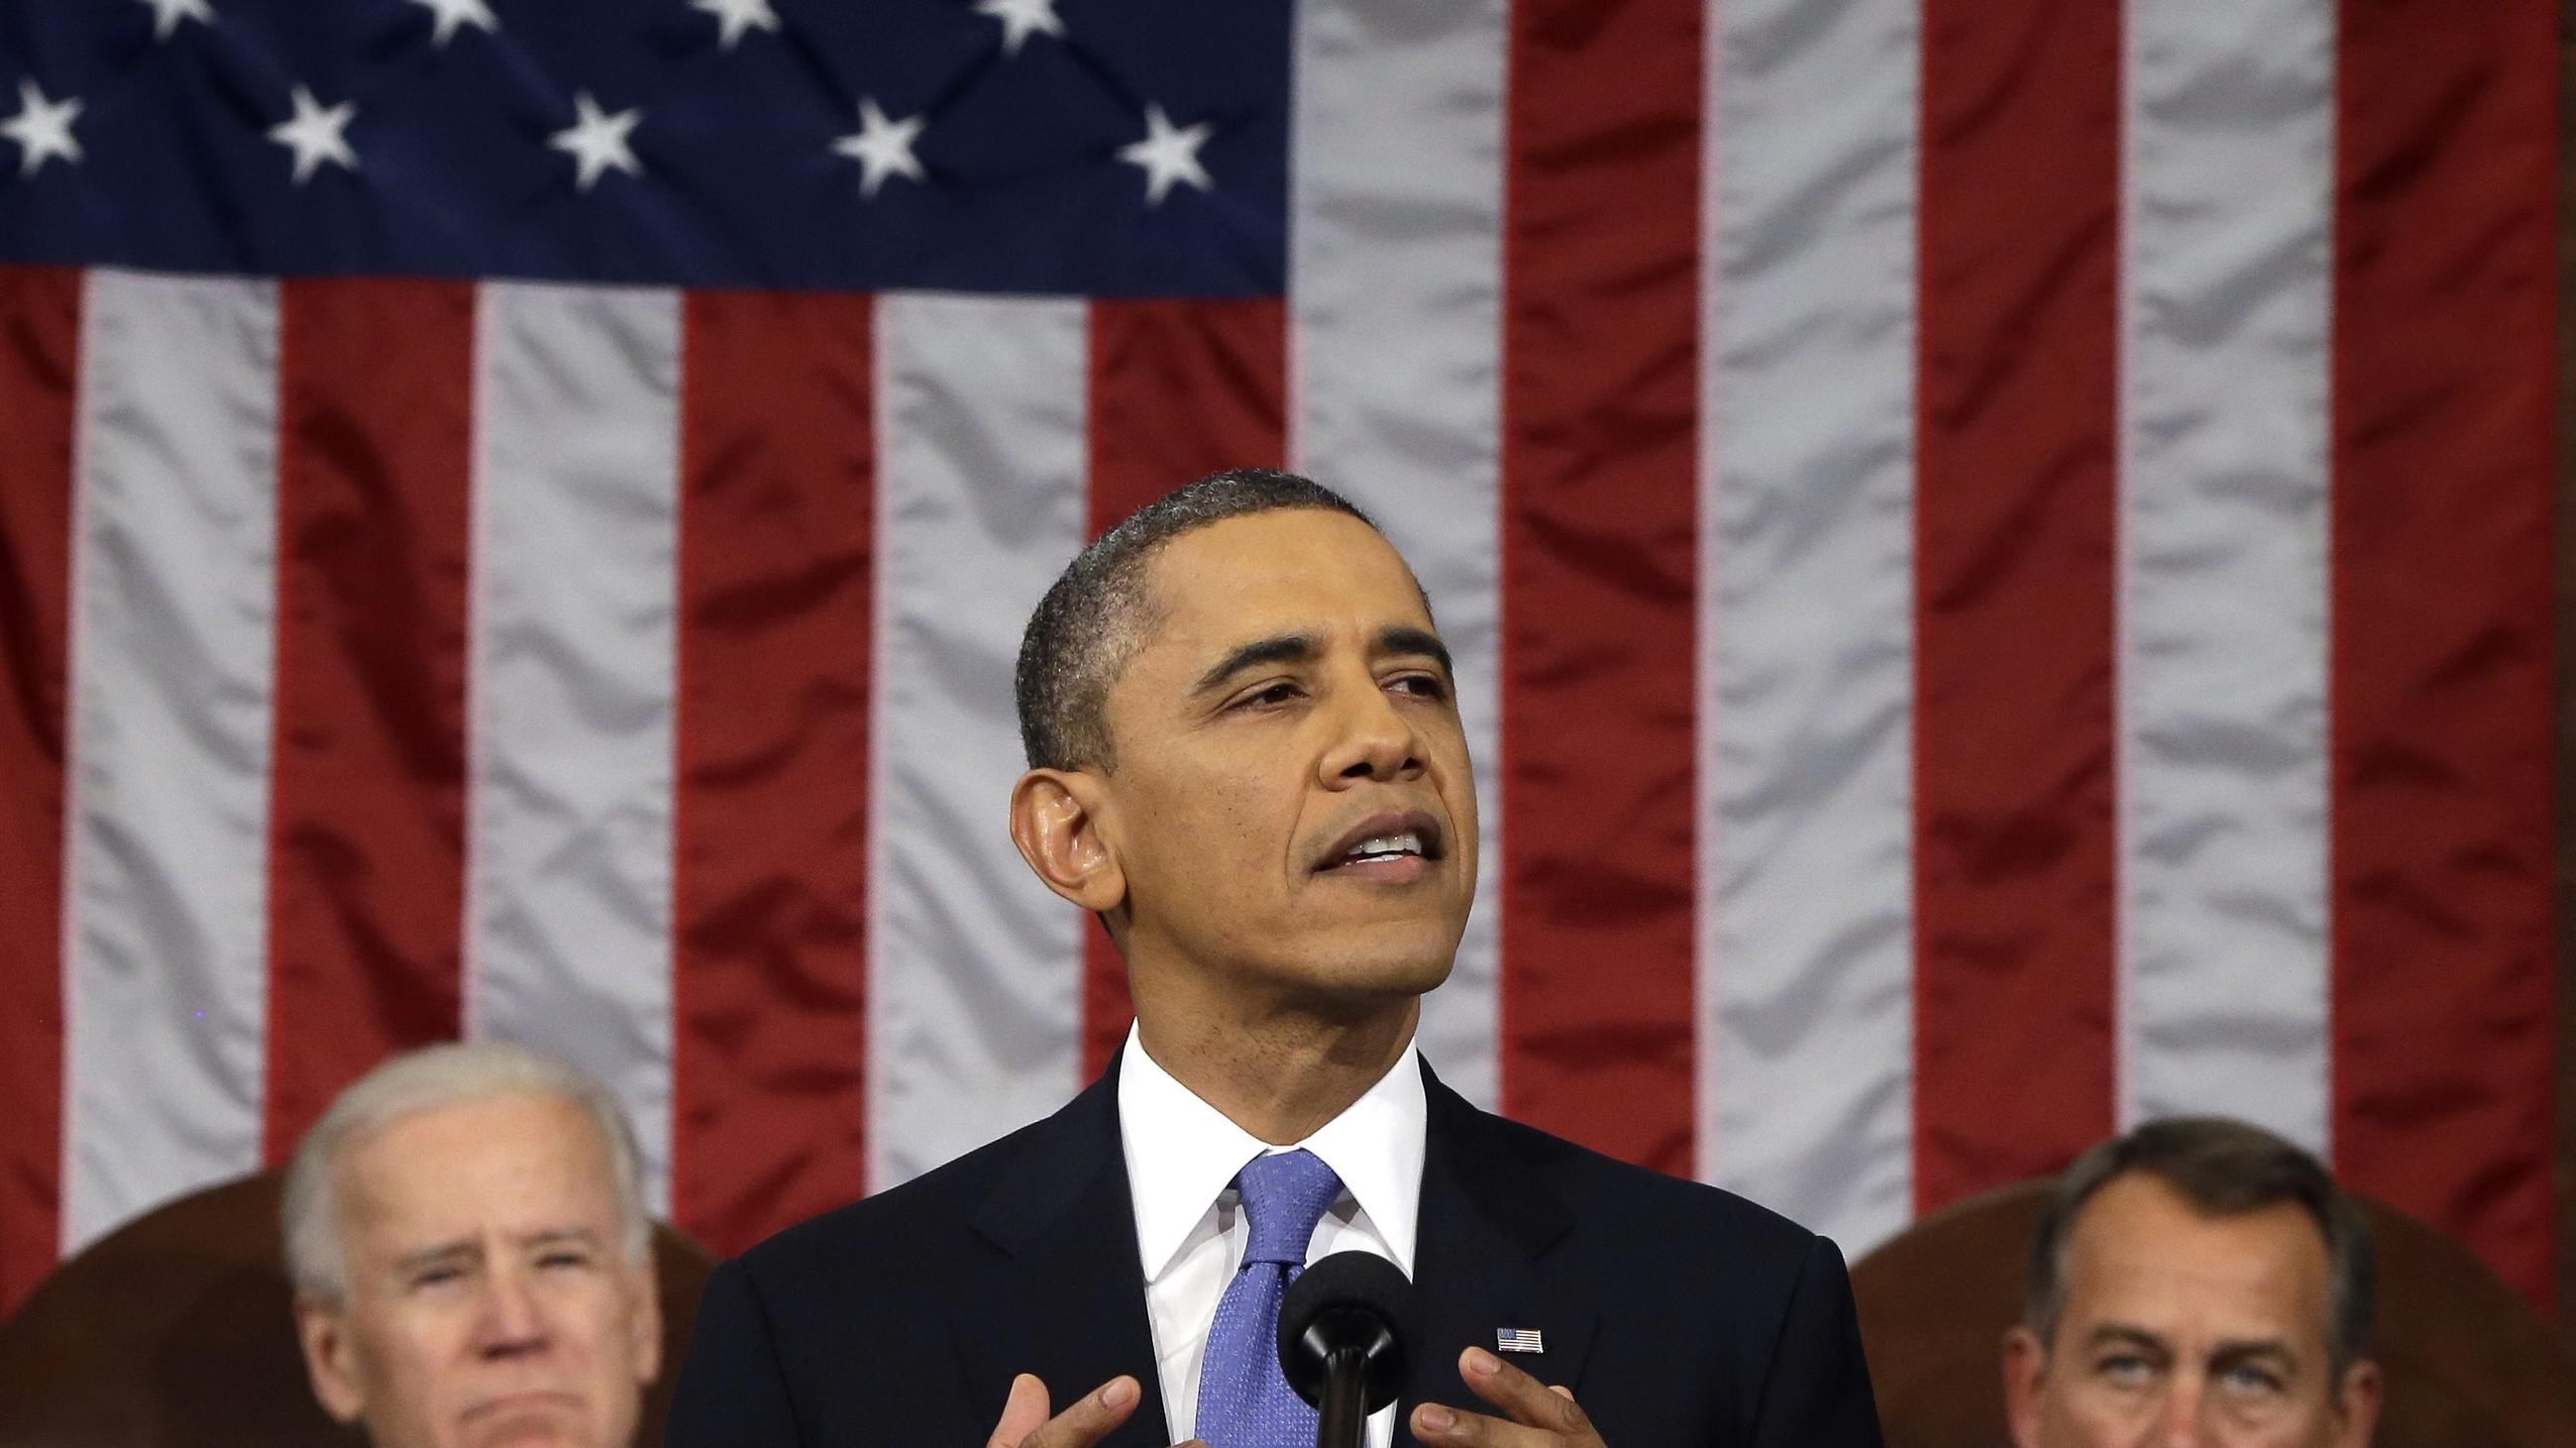 obama state of the union The state of the union is the annual speech the president gives to the joint session of congress the us constitution, article ii, section 3, says, the president shall from time to time give to the congress information of the state of the union, and recommend to their consideration such.